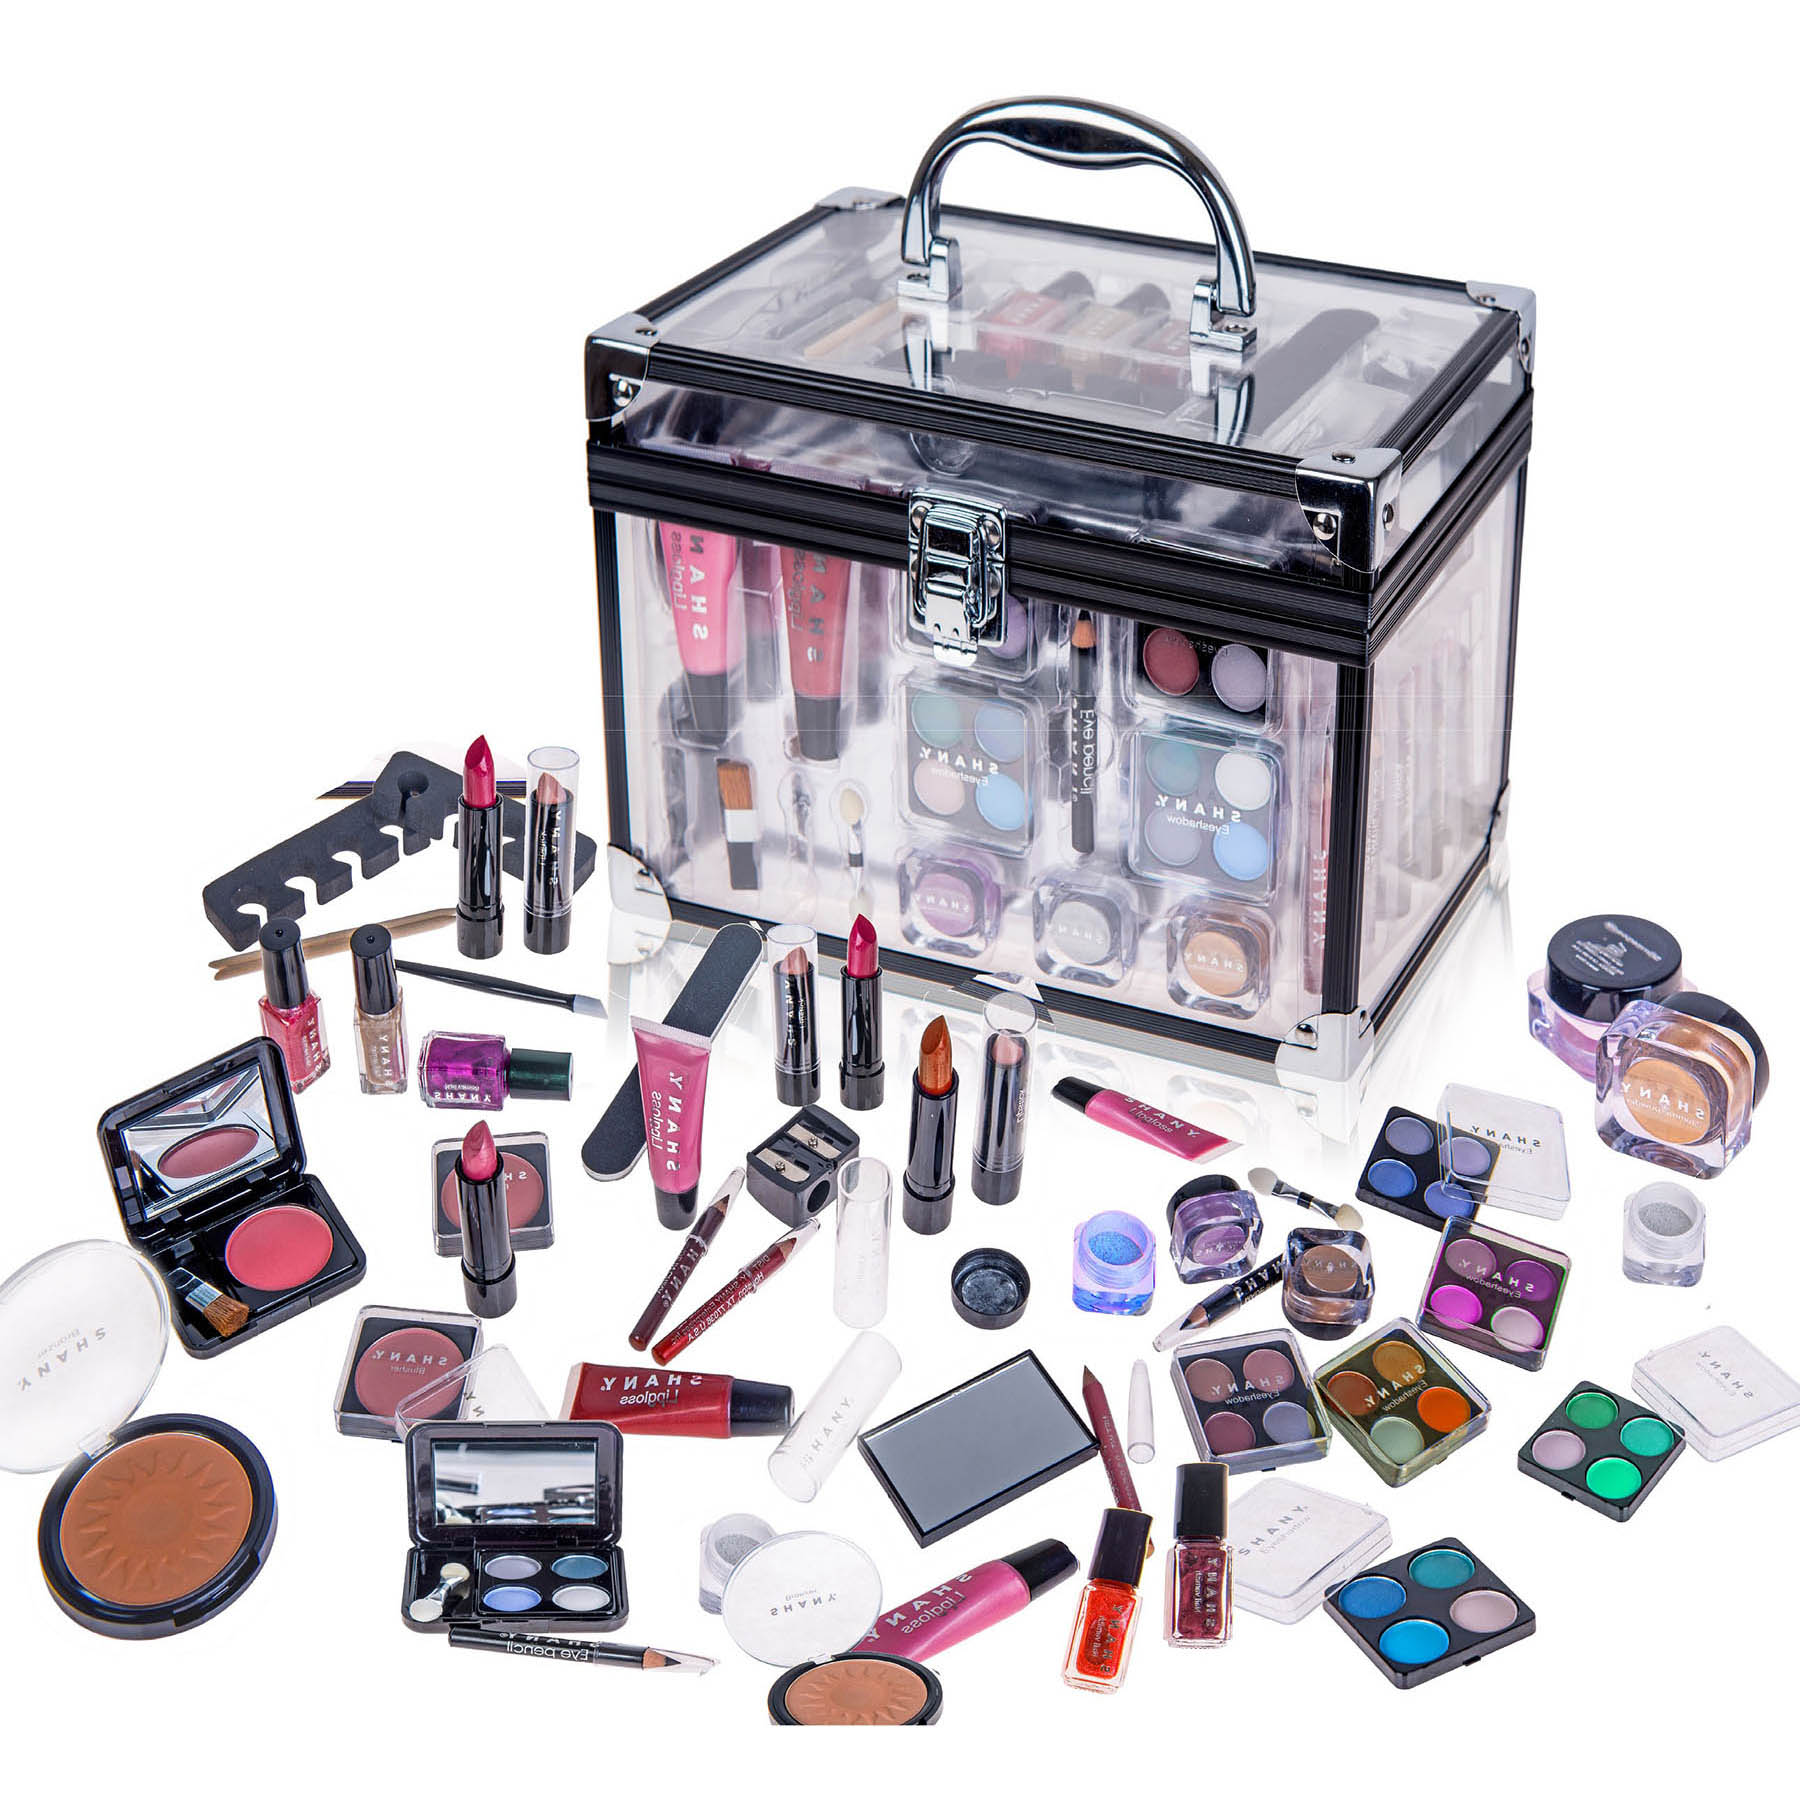 SHANY Carry All Makeup Case